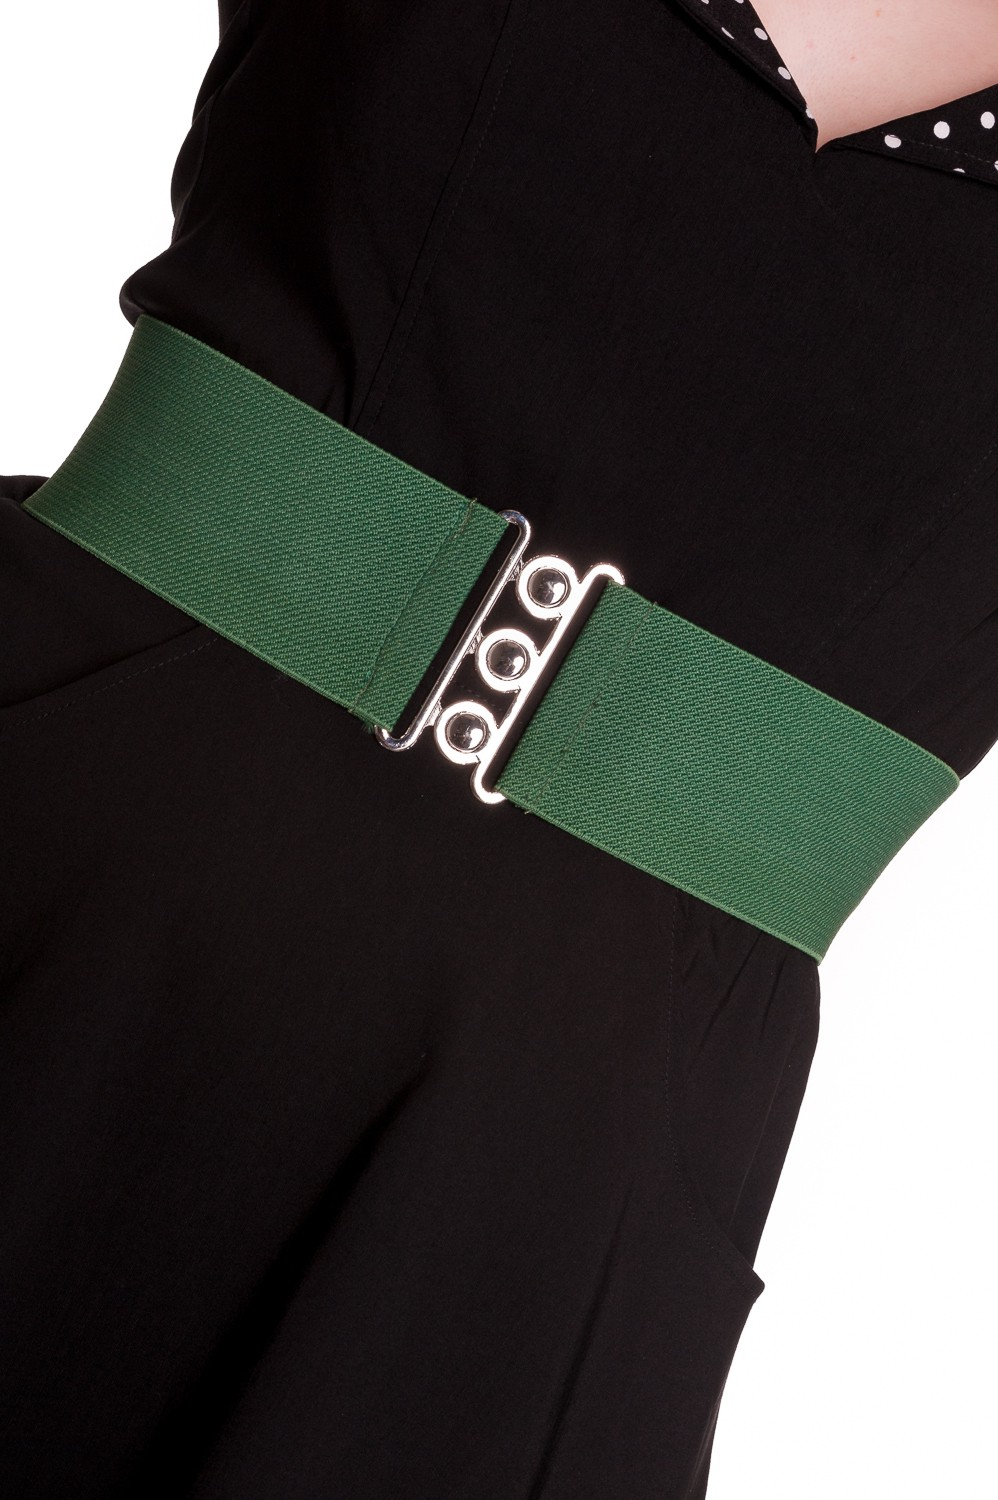 ps7065grn_ceinture_retro_pin-up_rockabilly_elastique_vert